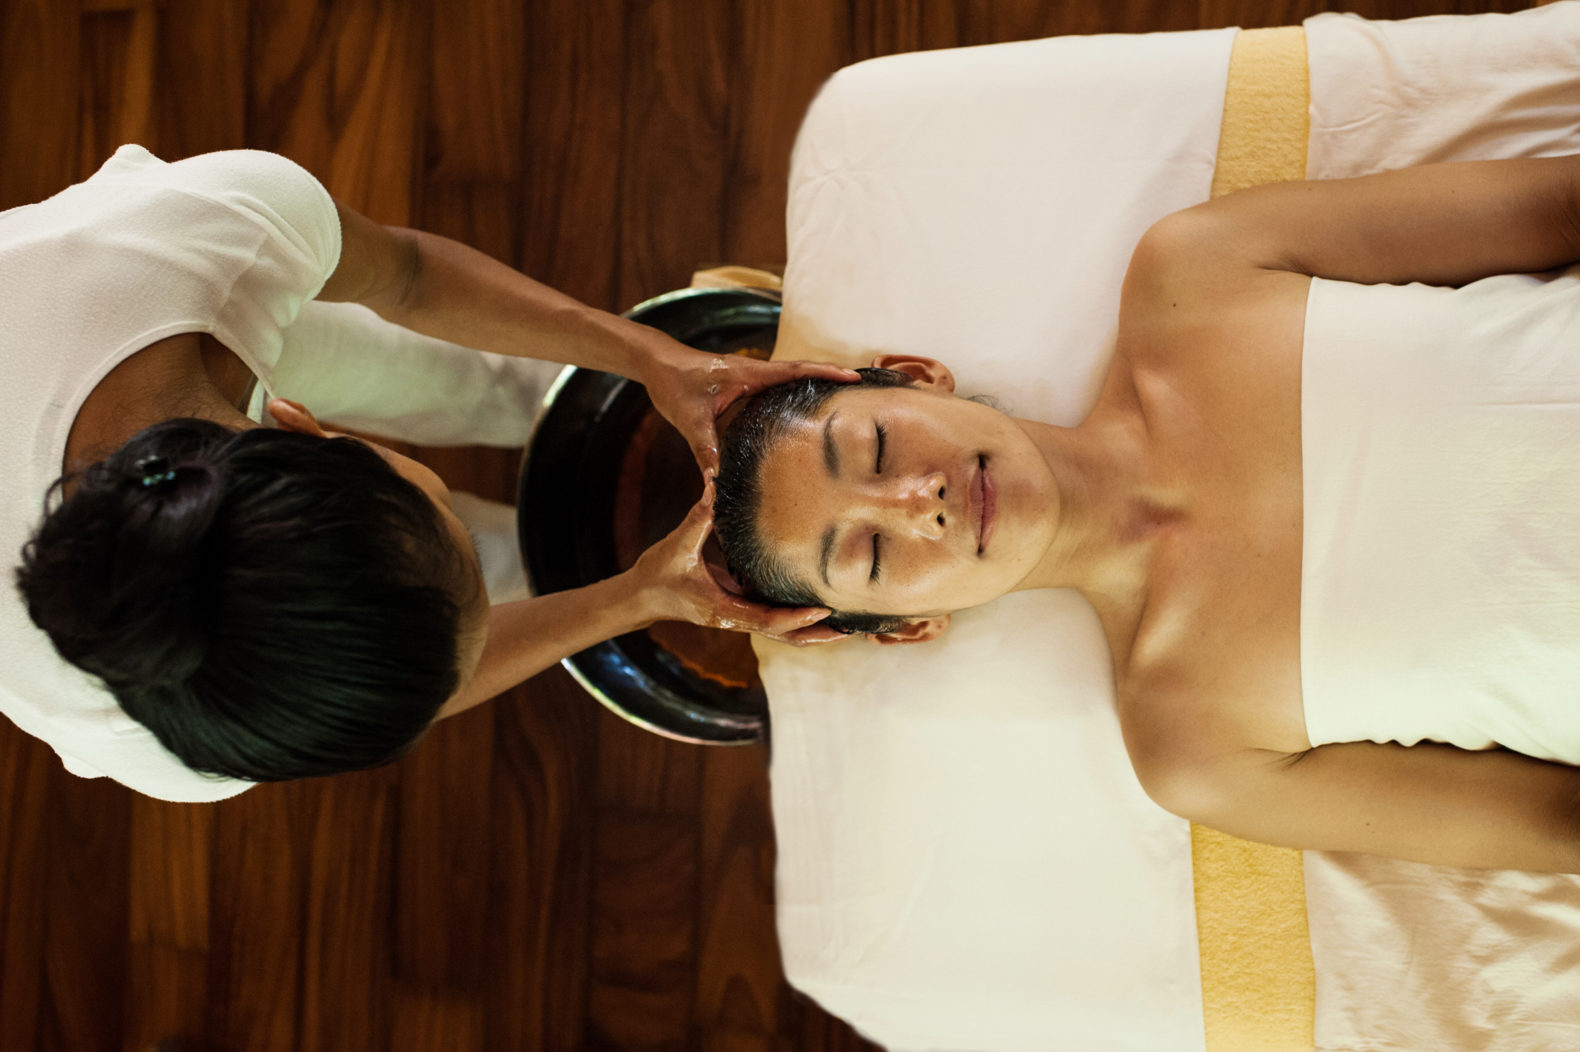 spa-treatment-facial-massage-oil-soneva-kiri-hotel-thailand-asia